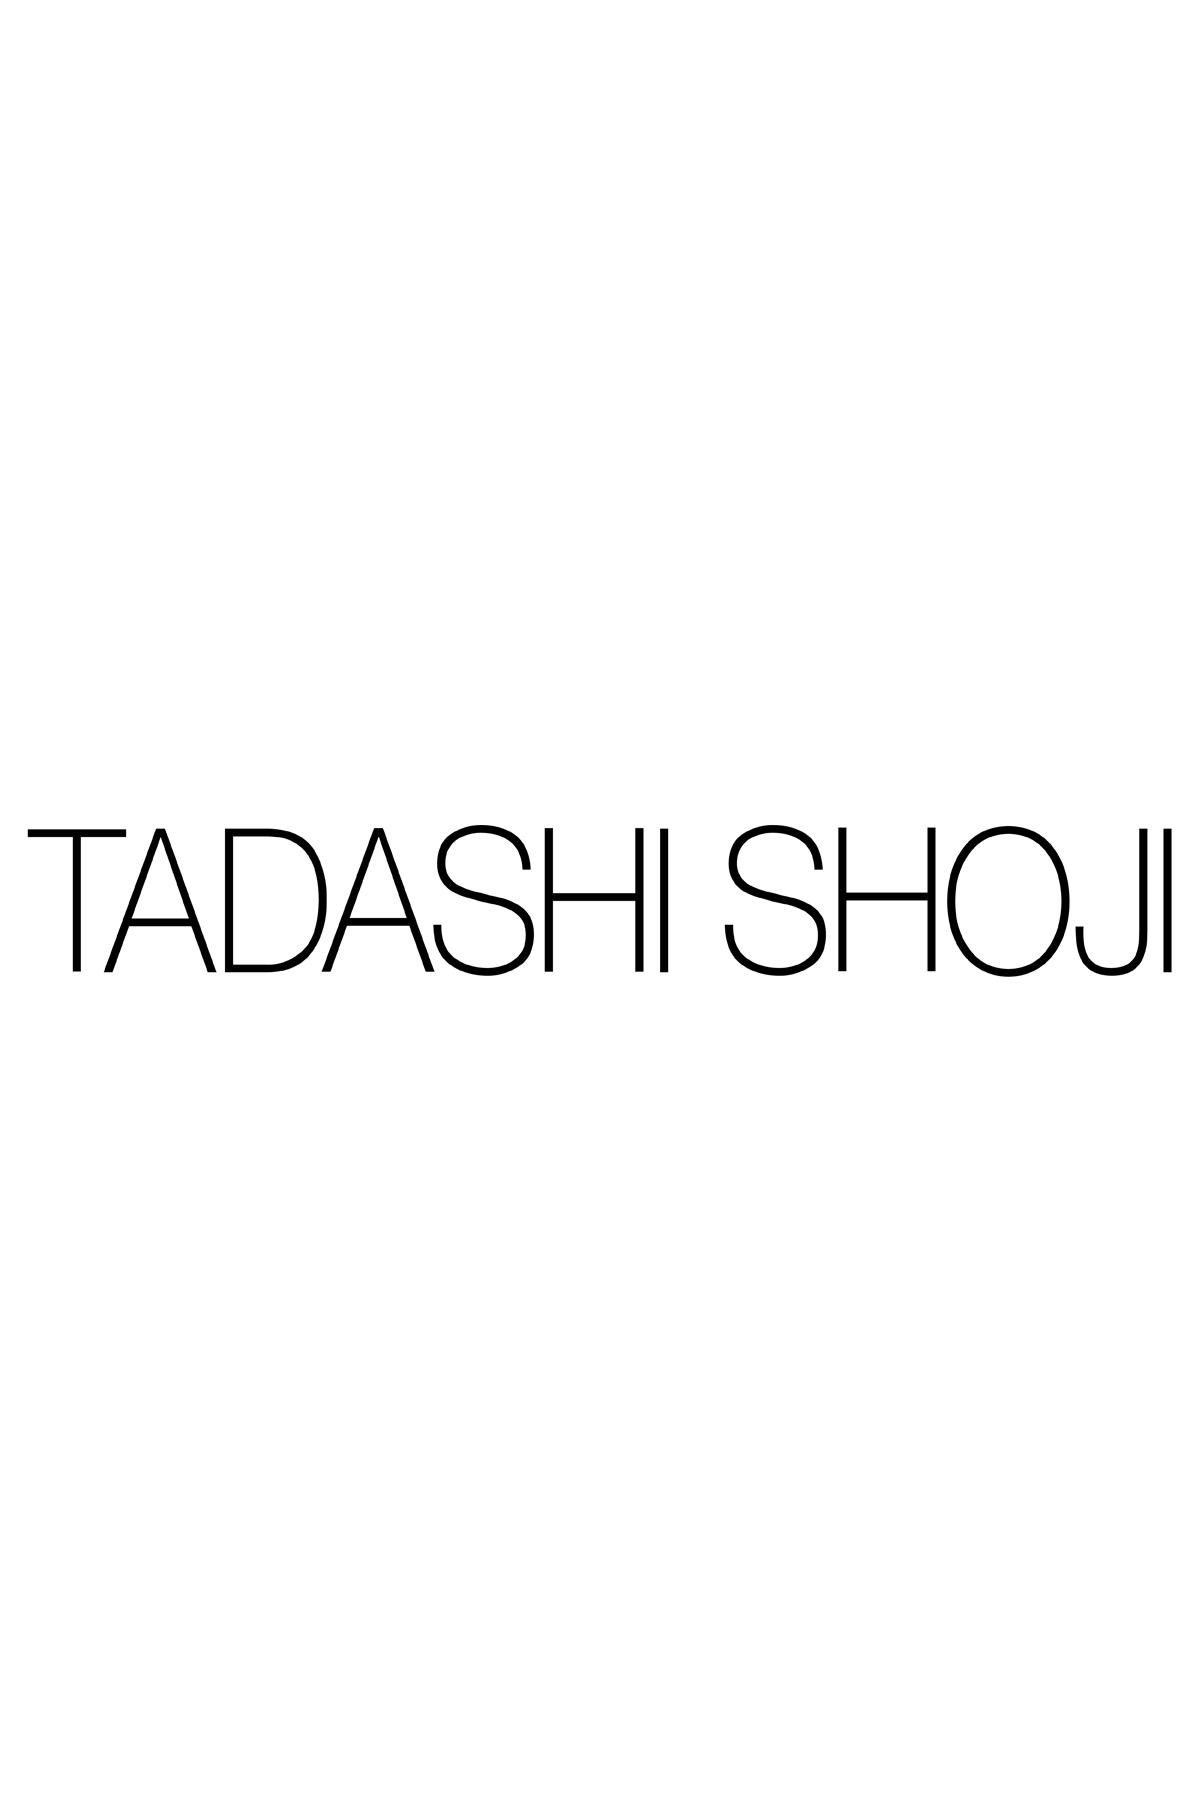 Liber Floral Headpiece